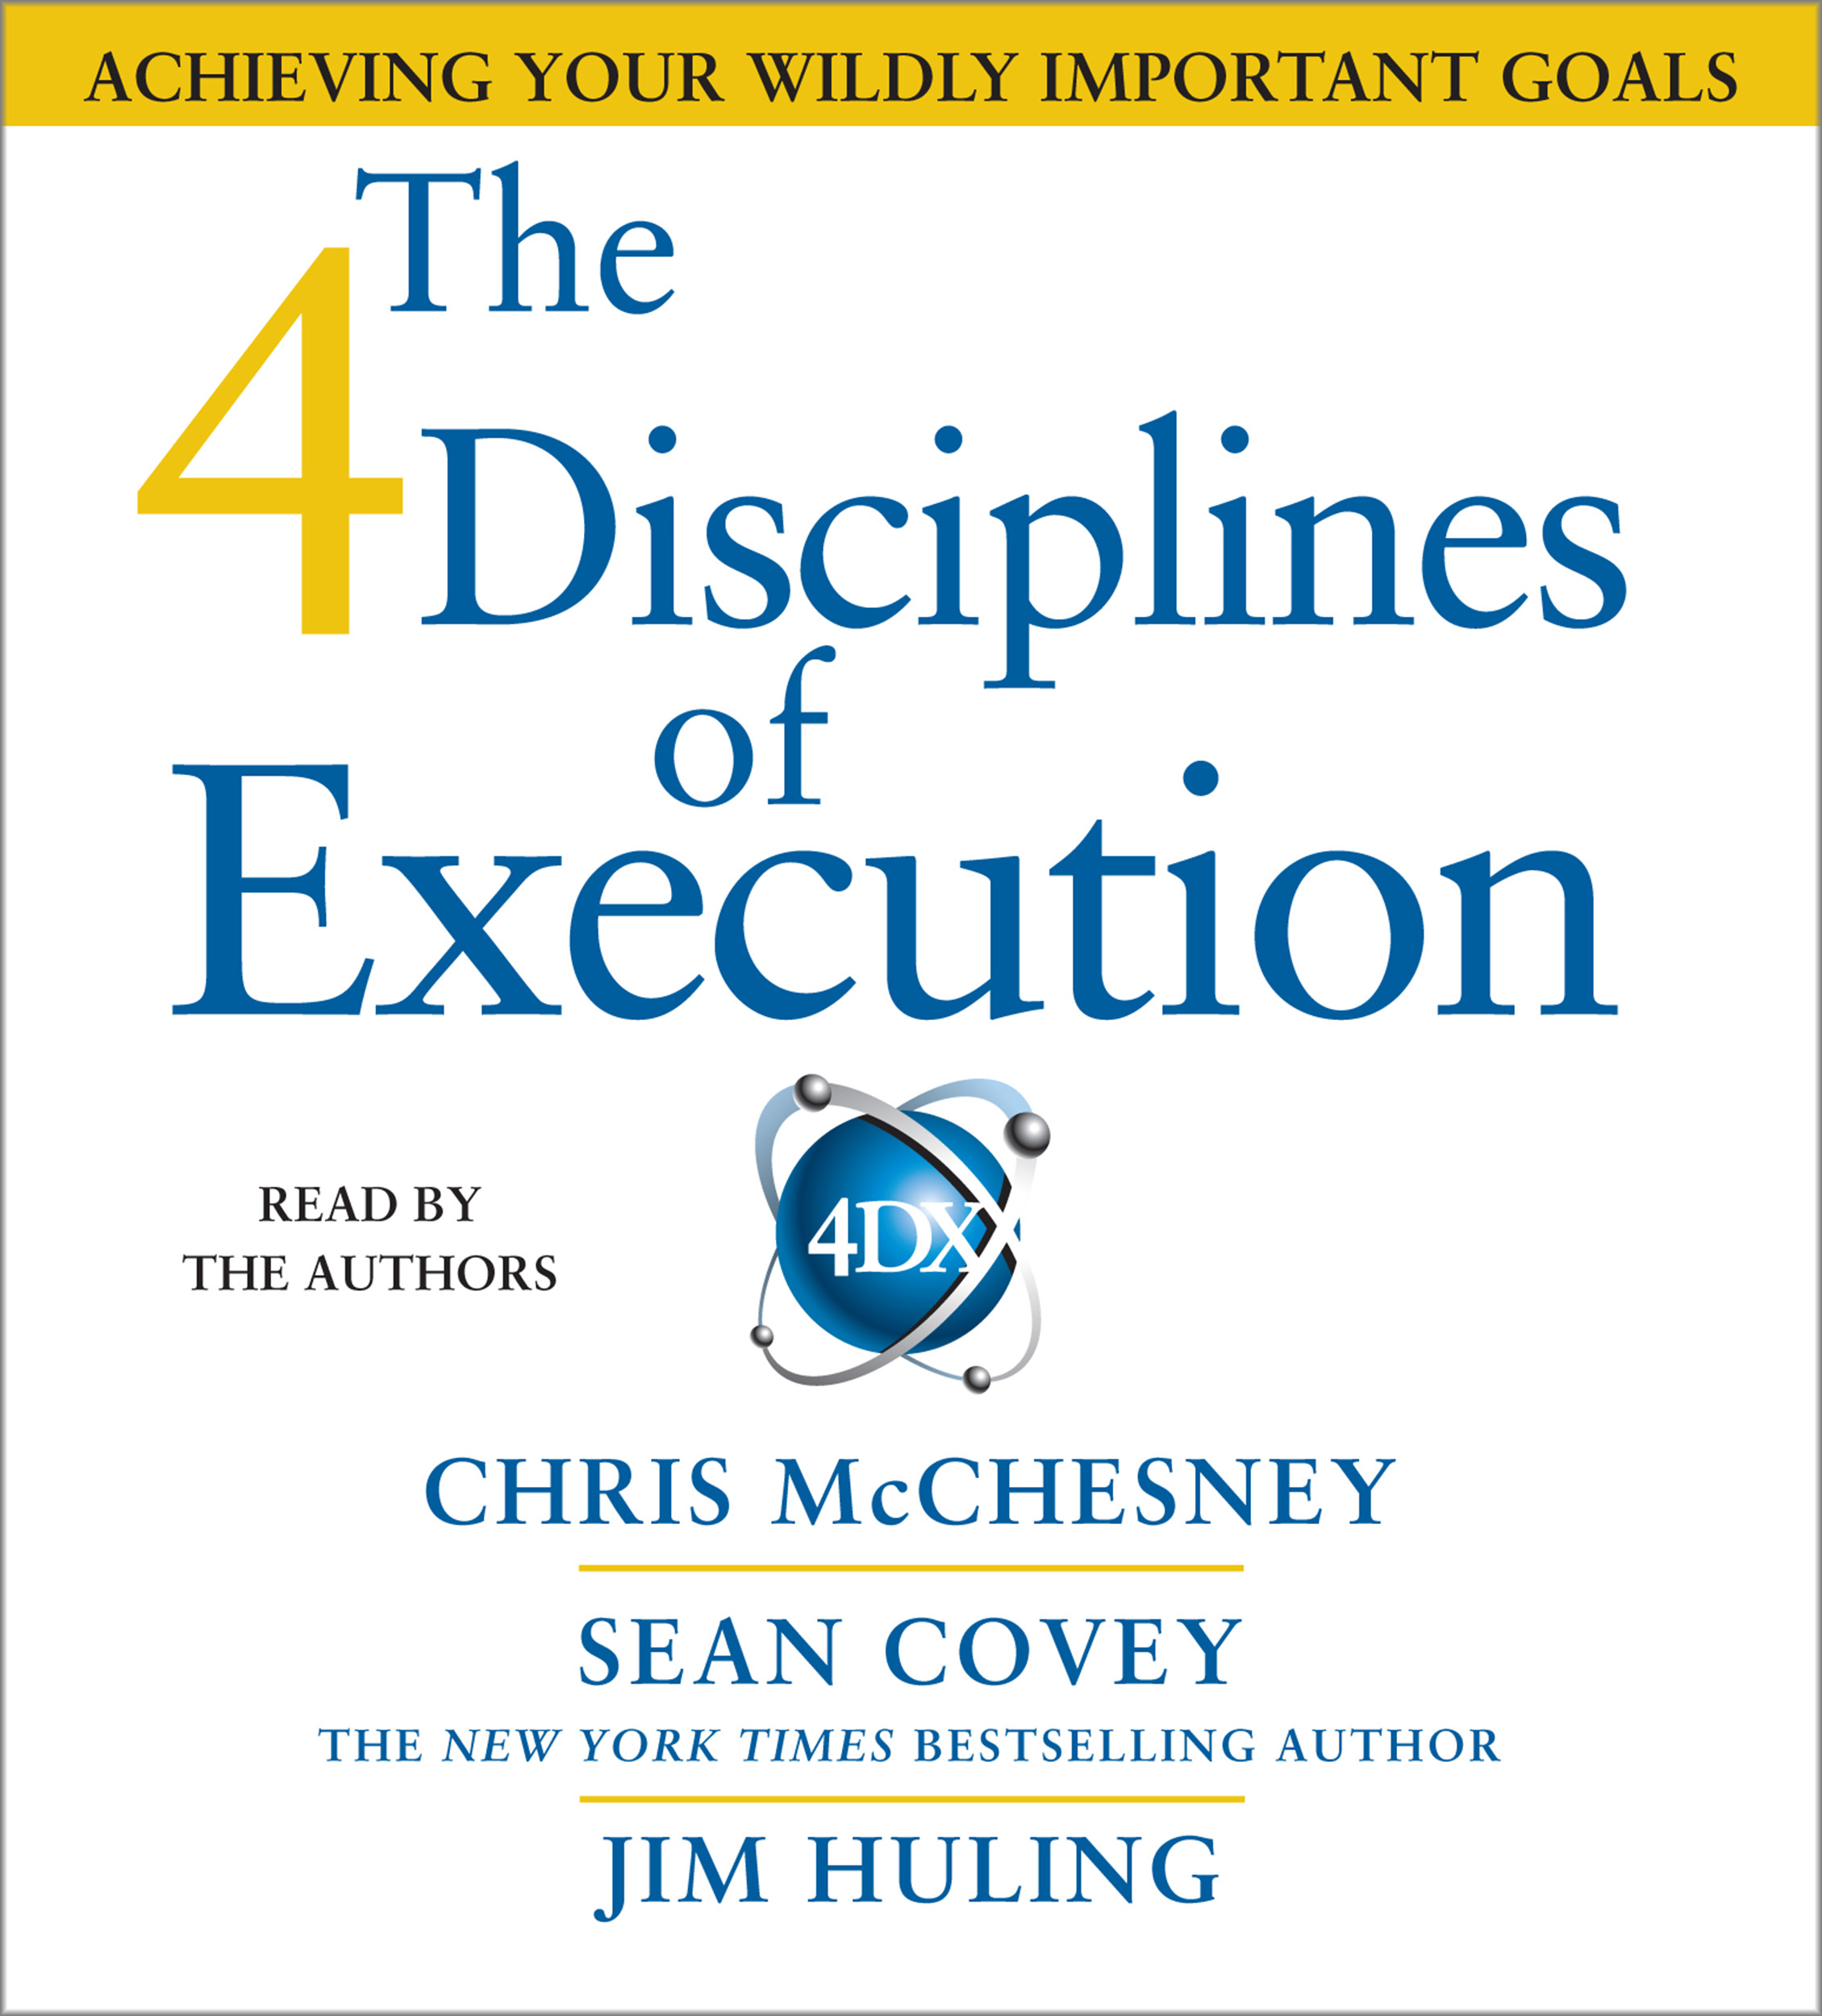 Sean covey official publisher page simon schuster uk book cover image jpg the 4 disciplines of execution fandeluxe Image collections